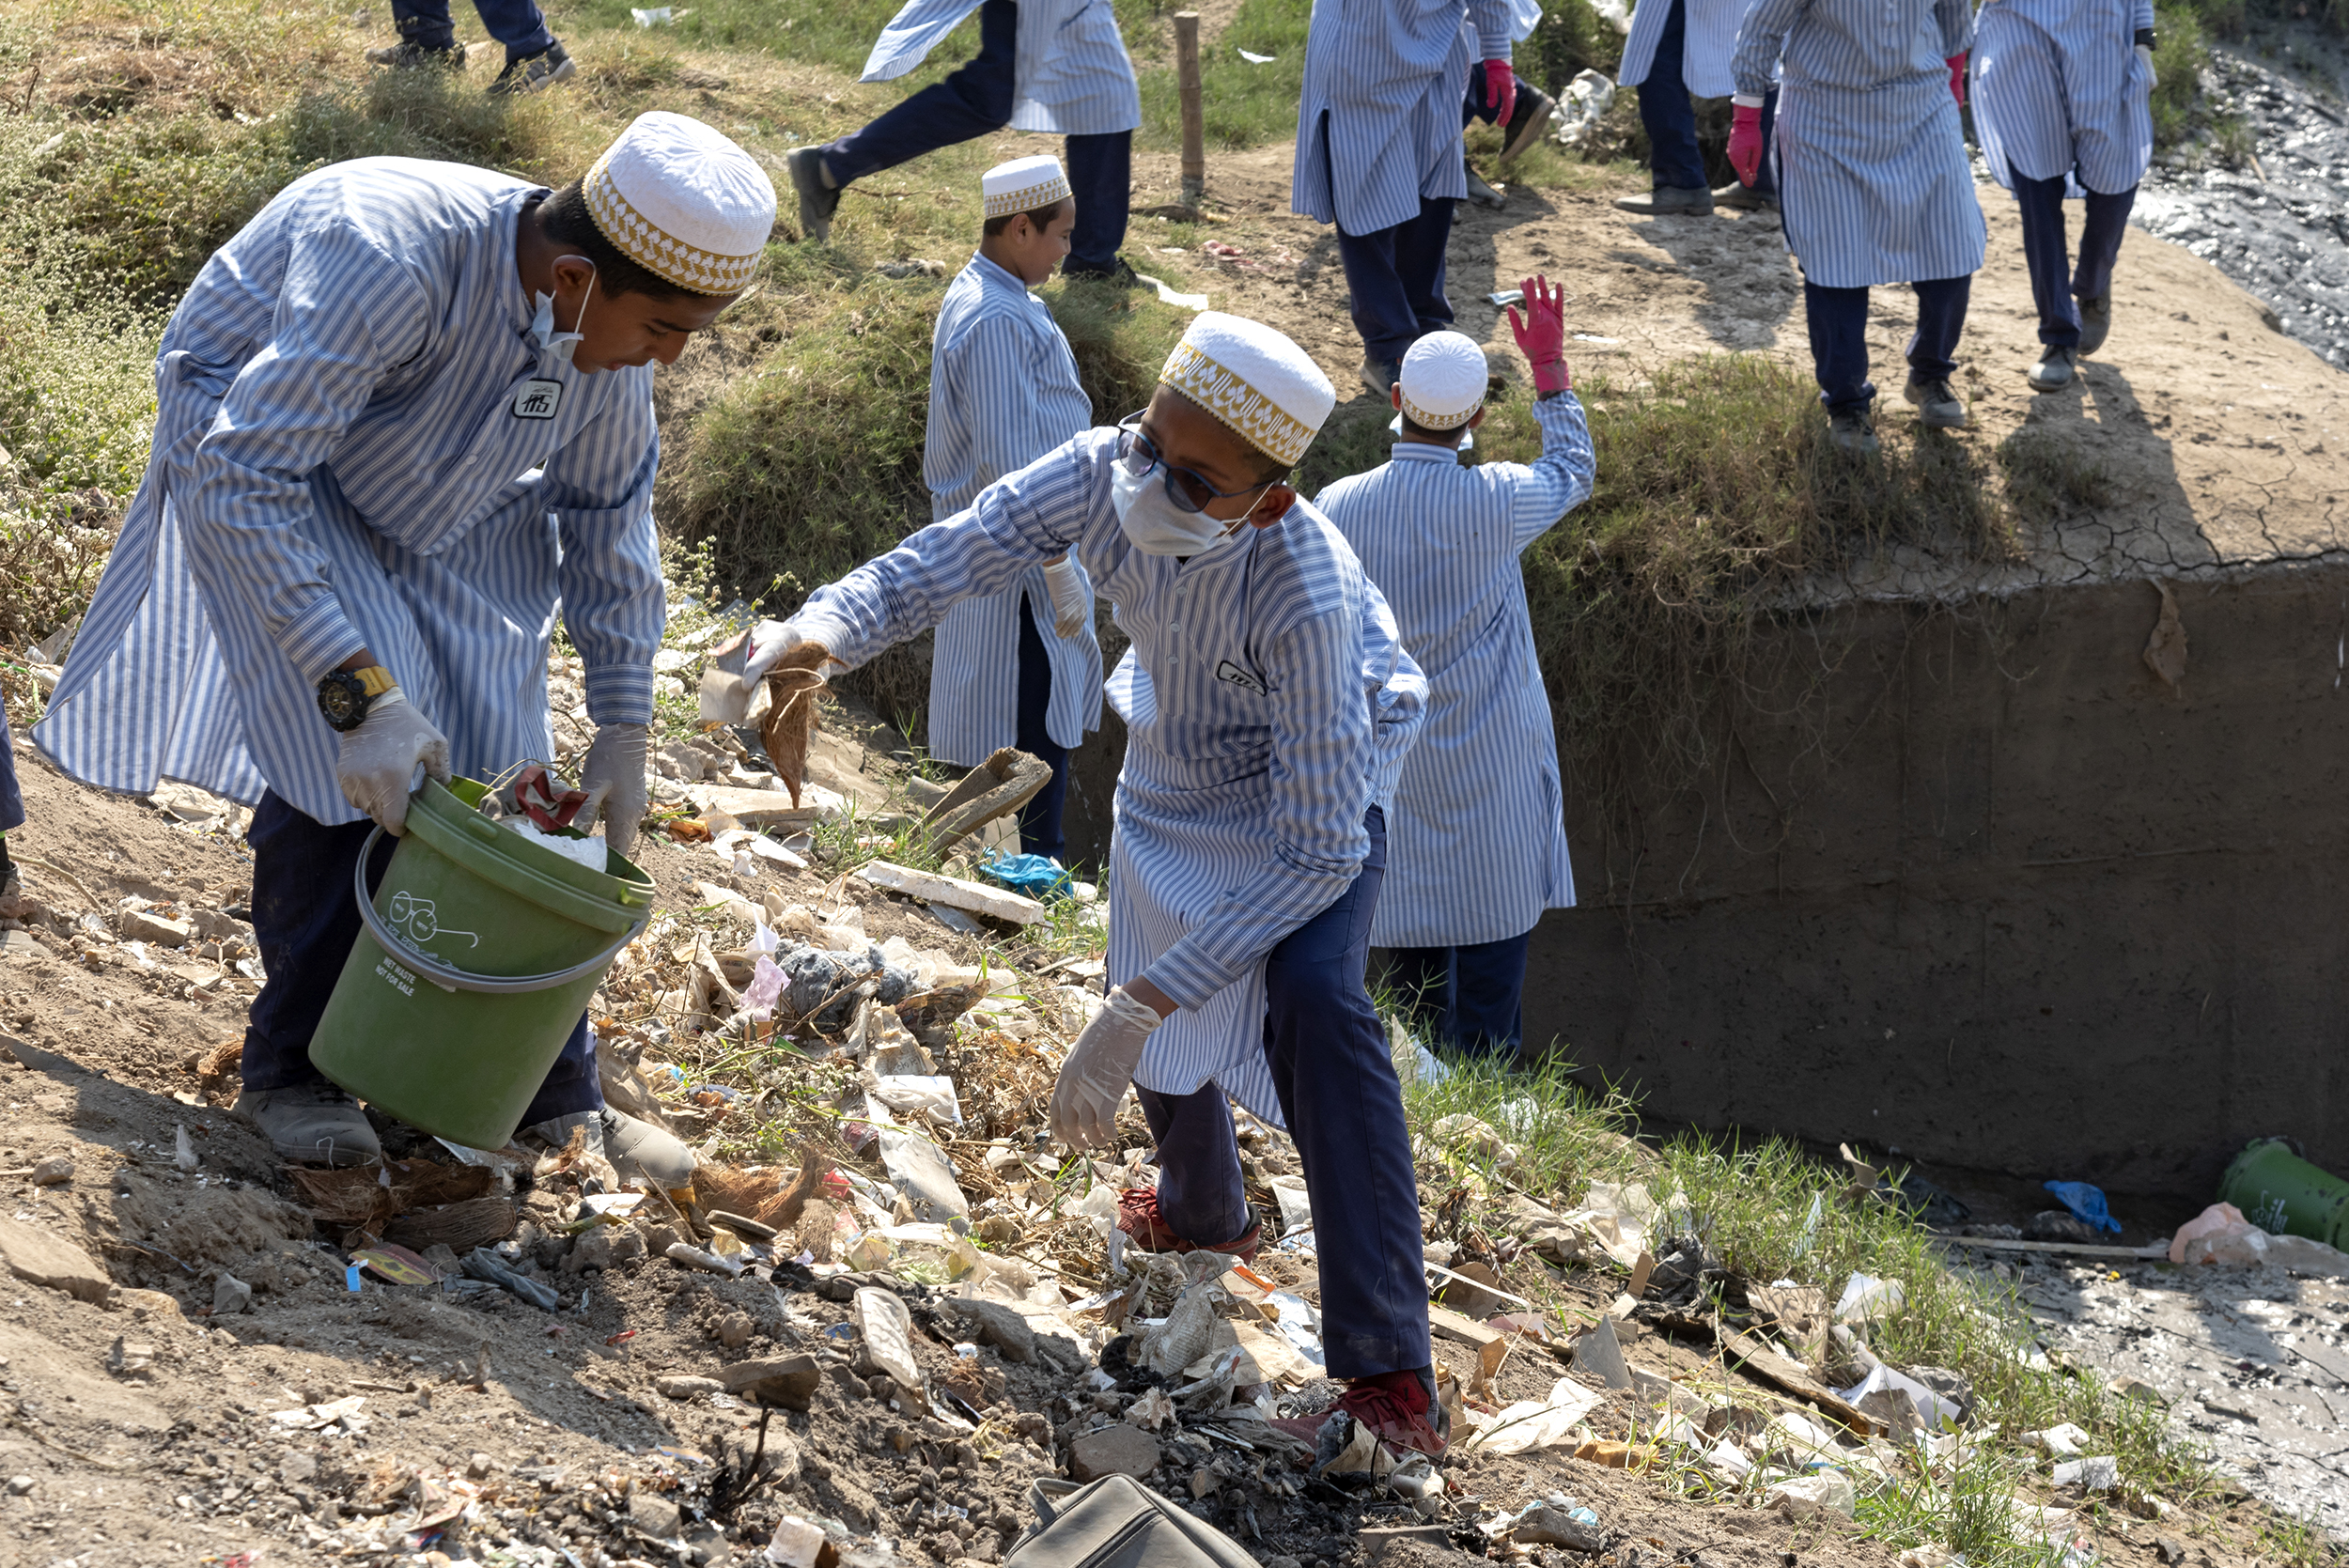 Dawoodi Bohras, Students, Cleanup, Plastic Pollution, Plastic Waste, Afroz Shah, Environment, Turning the Tide, Project Rise